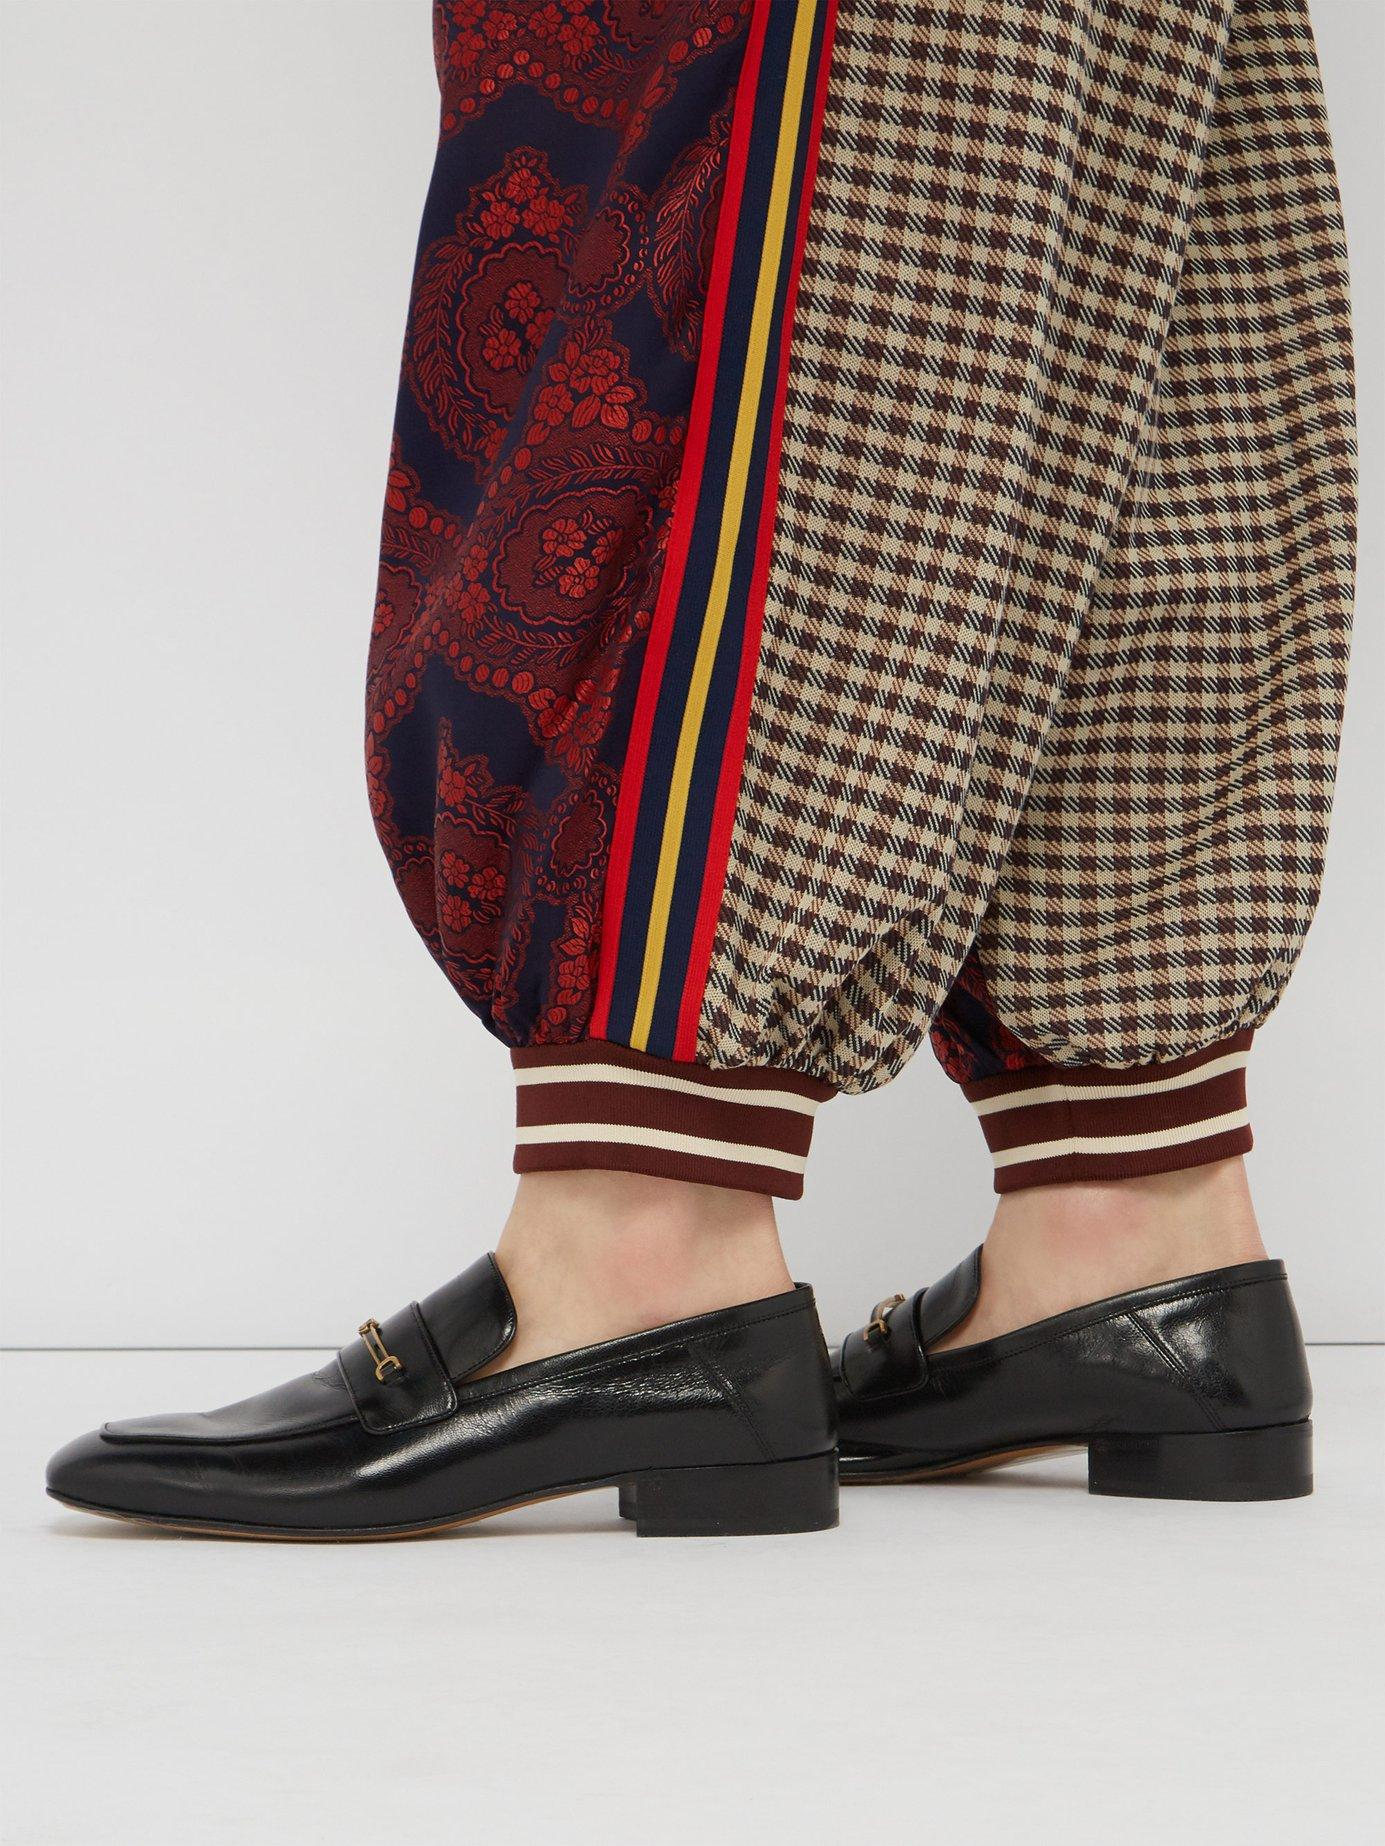 f459f4087 Lyst - Gucci Quentin Gg Horsebit Leather Loafers in Black for Men